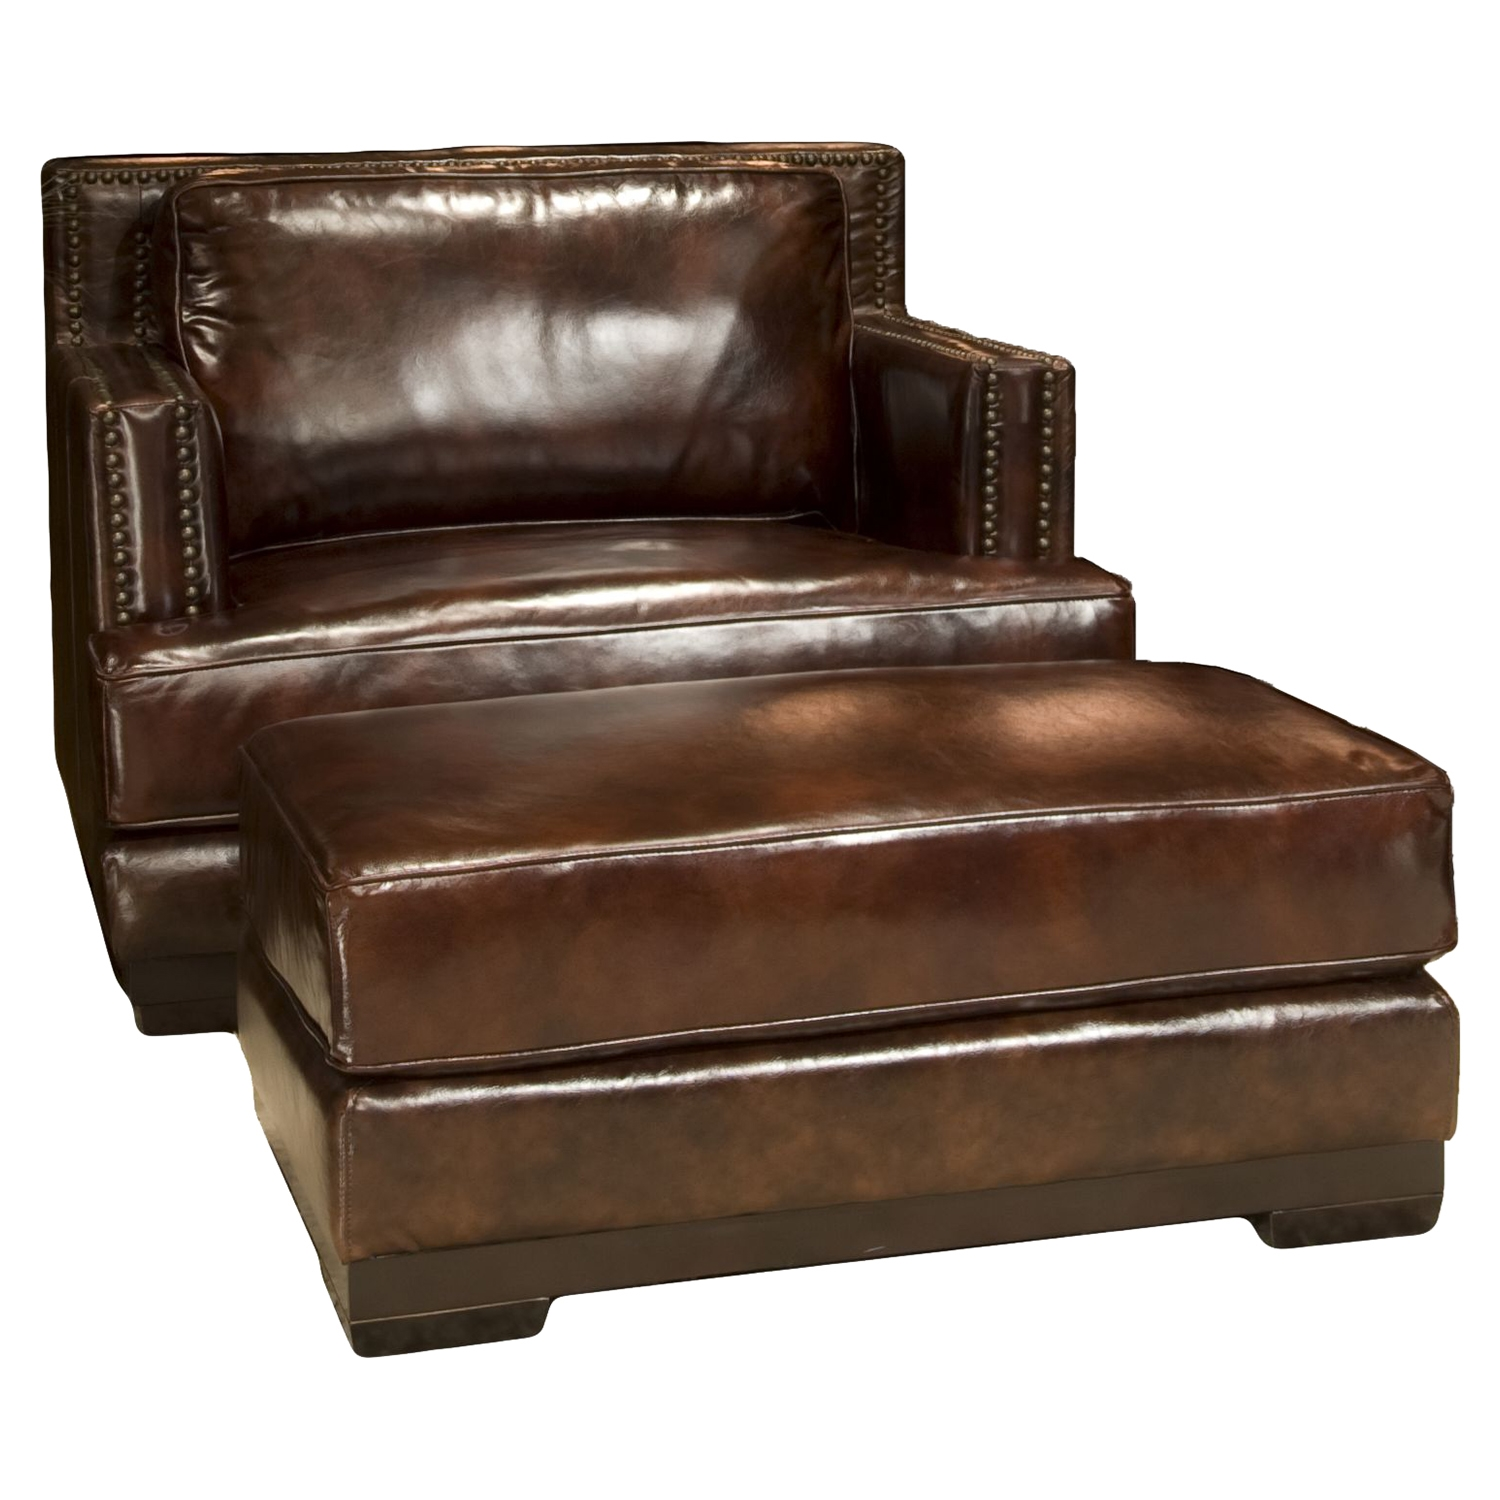 Emerson Top Grain Leather Accent Chair and Ottoman - Saddle - ELE-EME-2PC-SC-SO-SADD-1